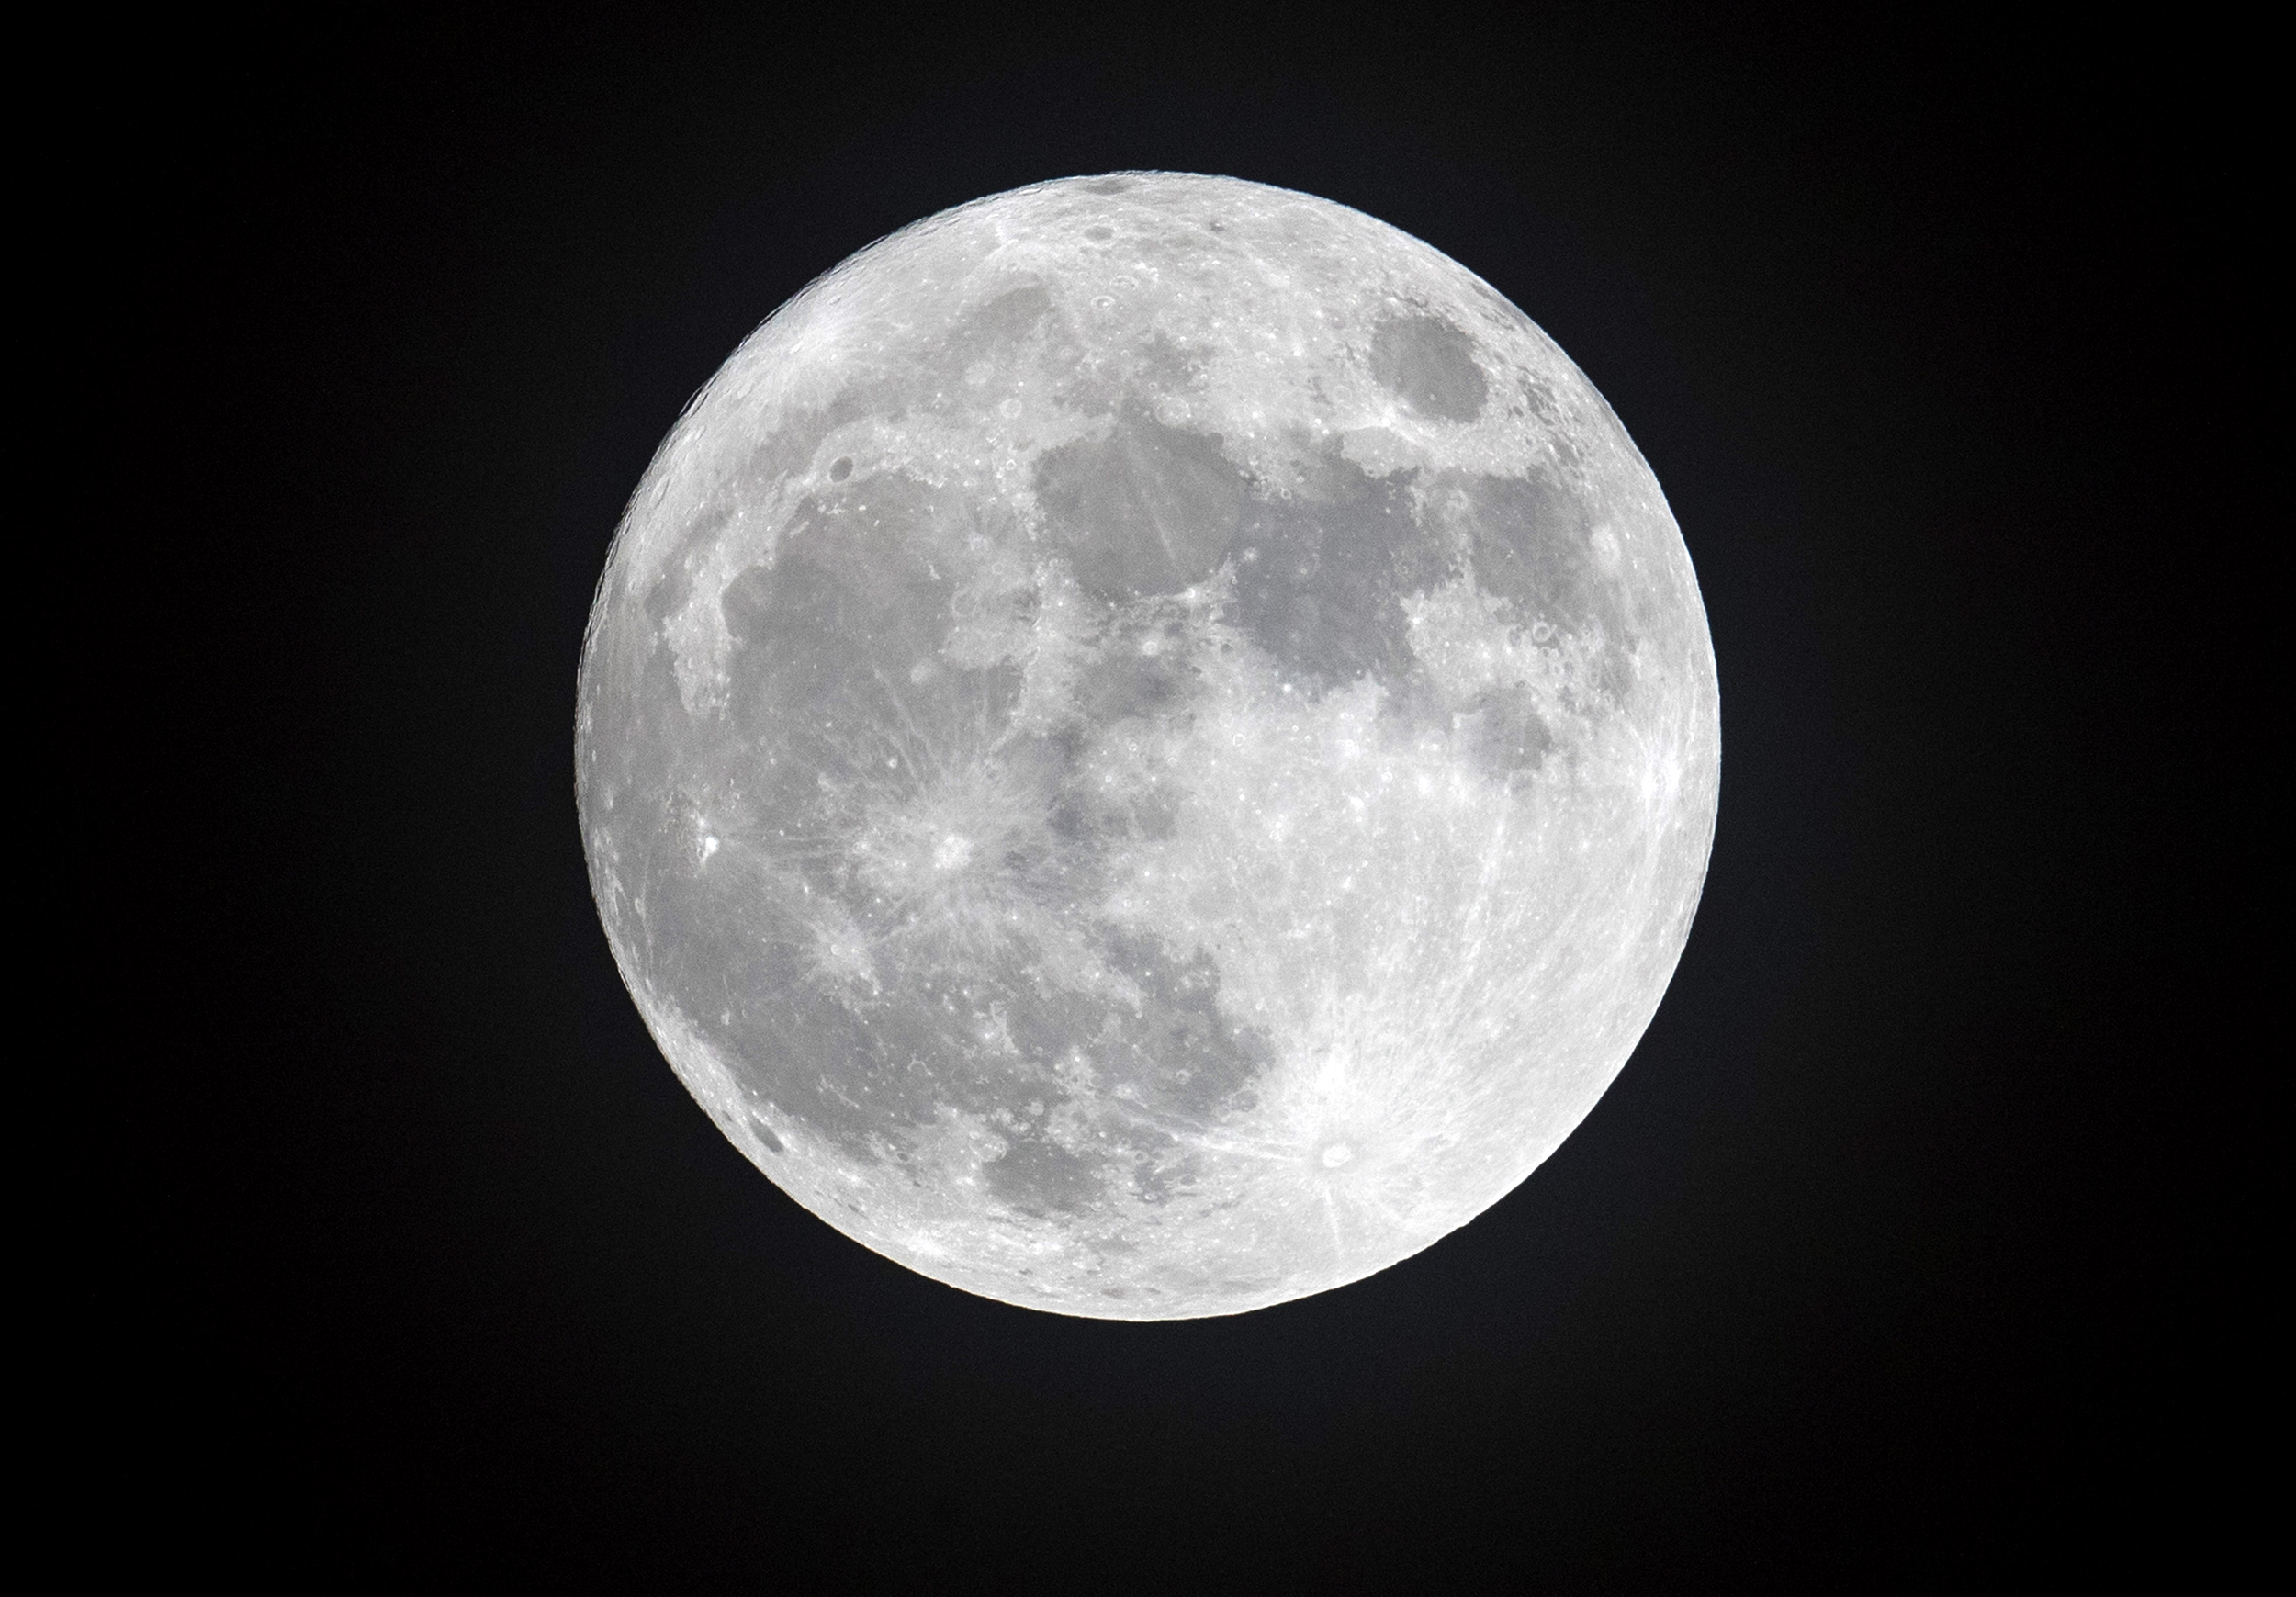 On Friday The 13th A Full Harvest Moon Will Be Visible In The